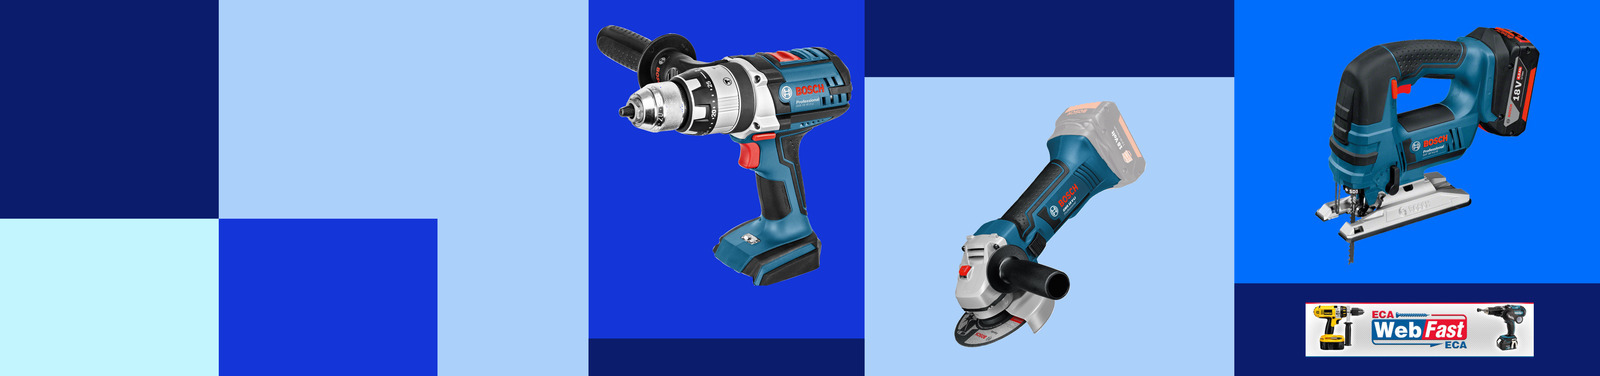 Autumn Savings On Bosch Power Tools